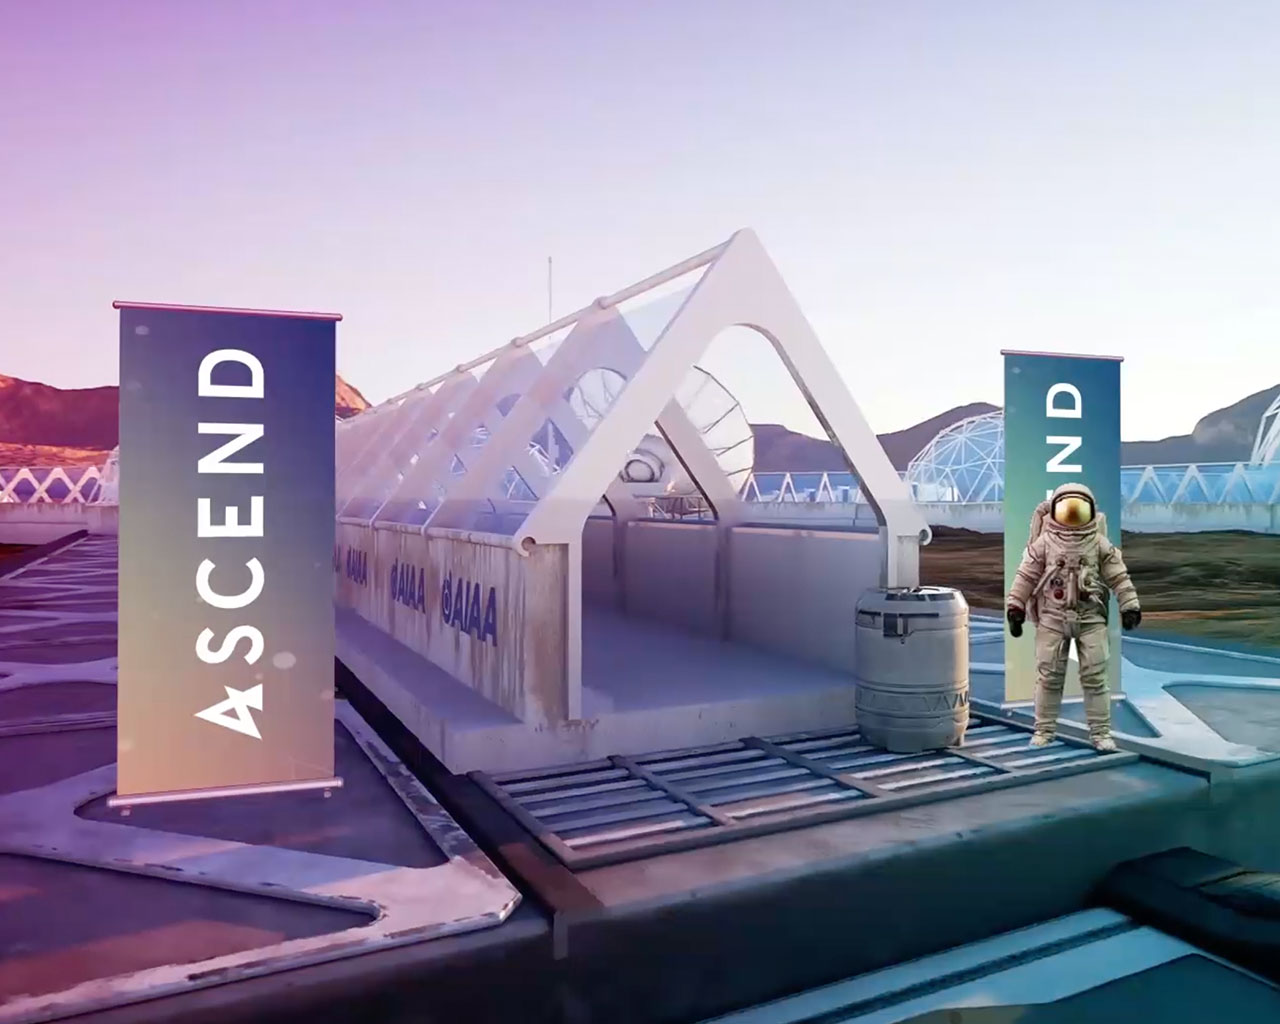 Astronaut standing by the entrance to the virtual ASCEND event